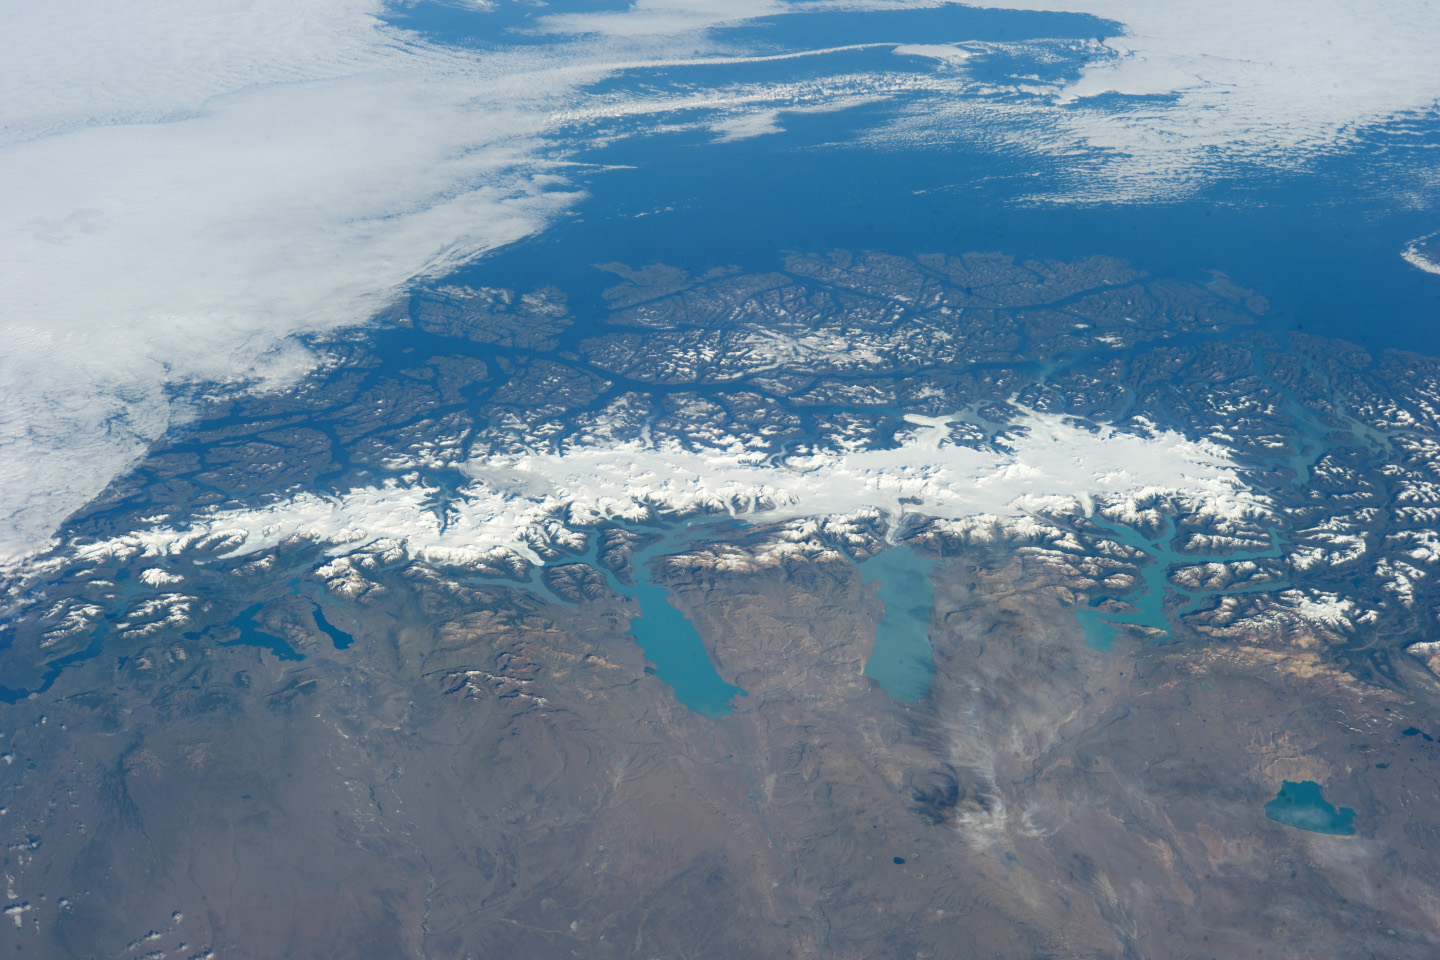 The Southern Patagonian icefield from space. Source: NASA Earth Observatory.